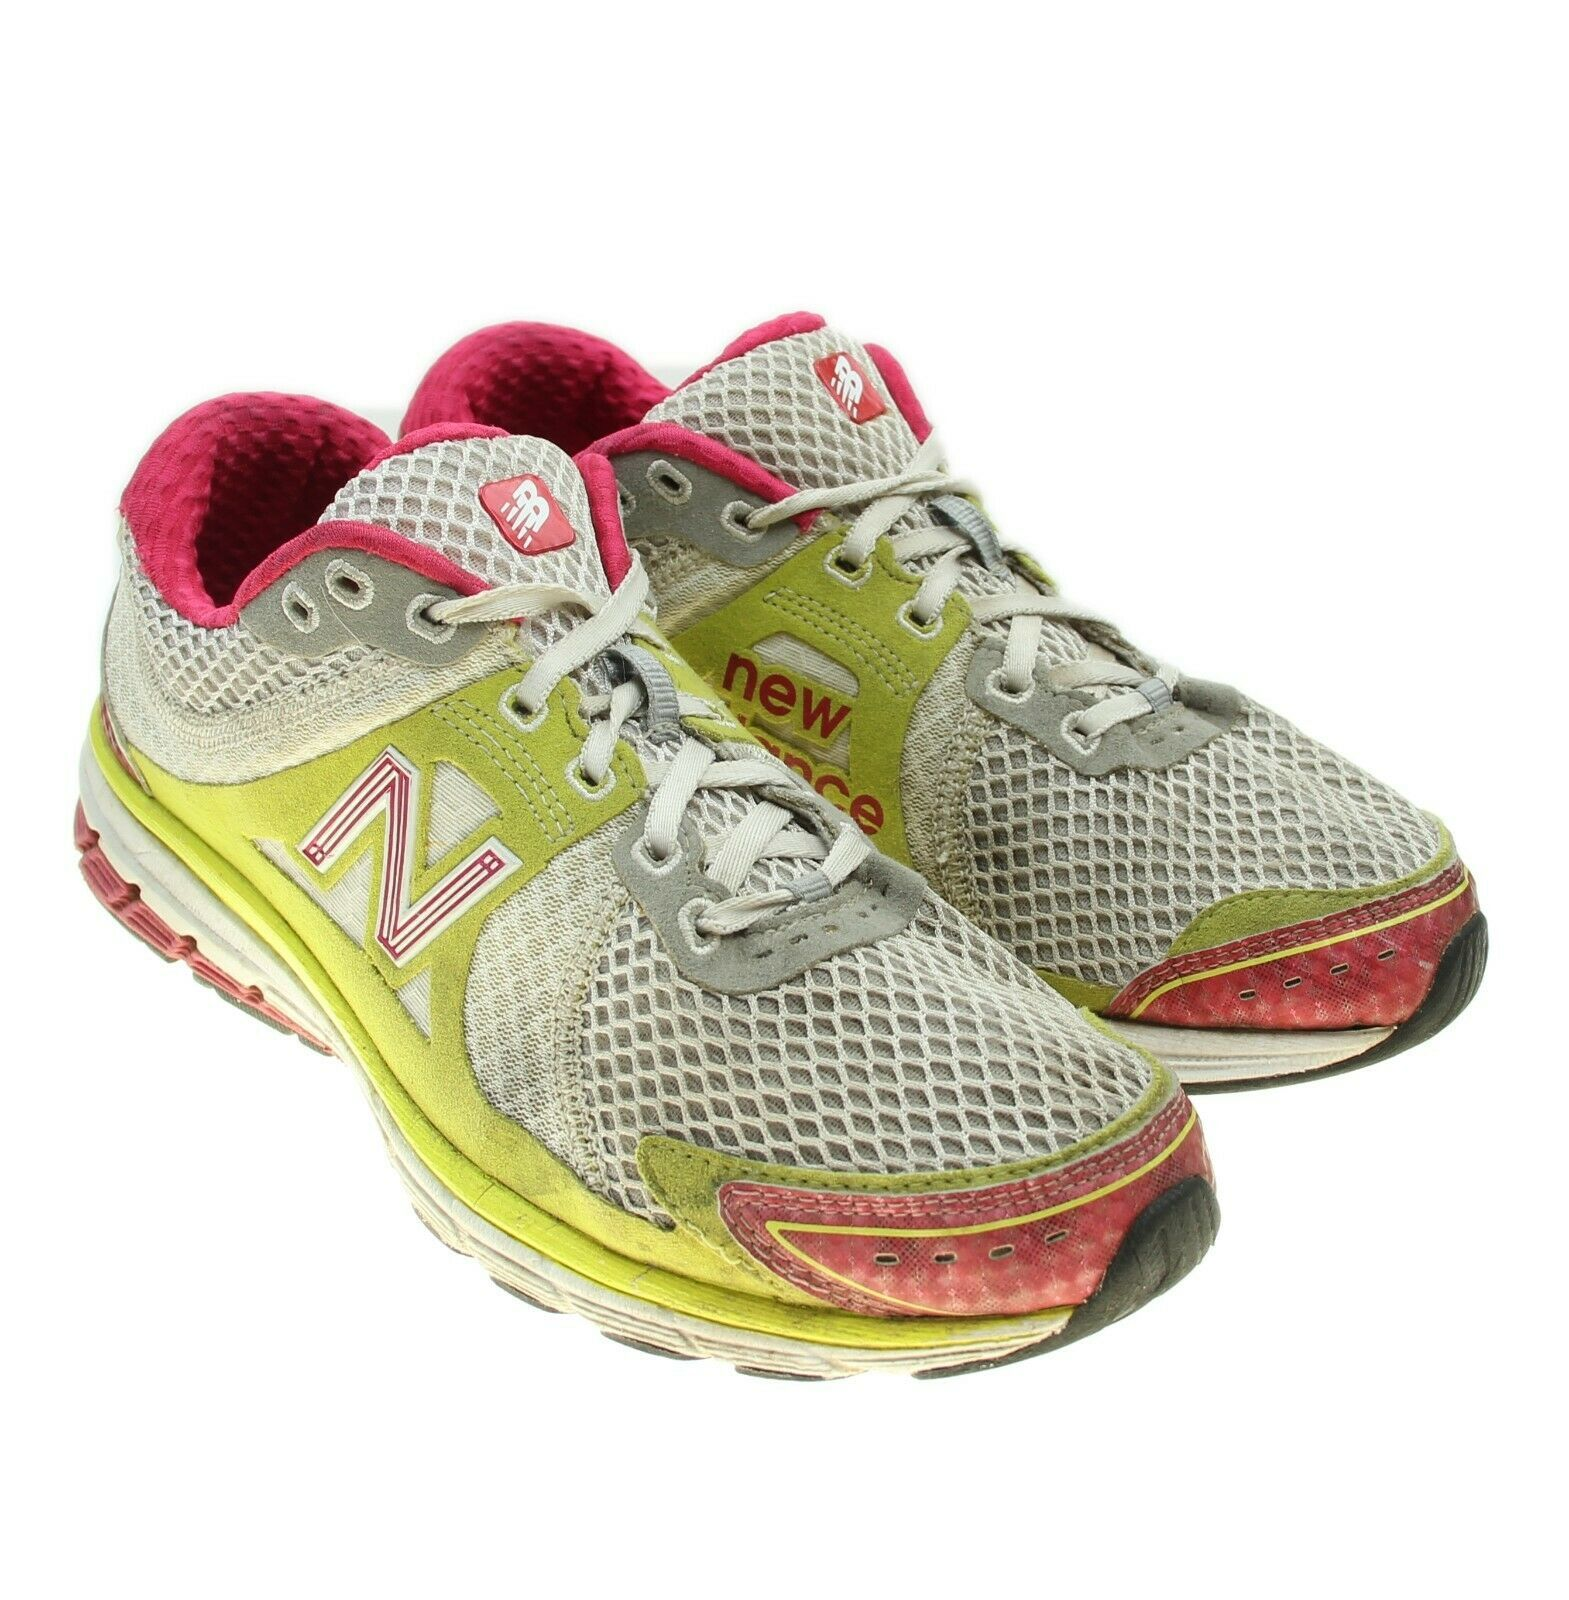 NEW BALANCE 1190 Womens White Yellow Running Training Sneakers 9.5 WR1190PL - $24.25